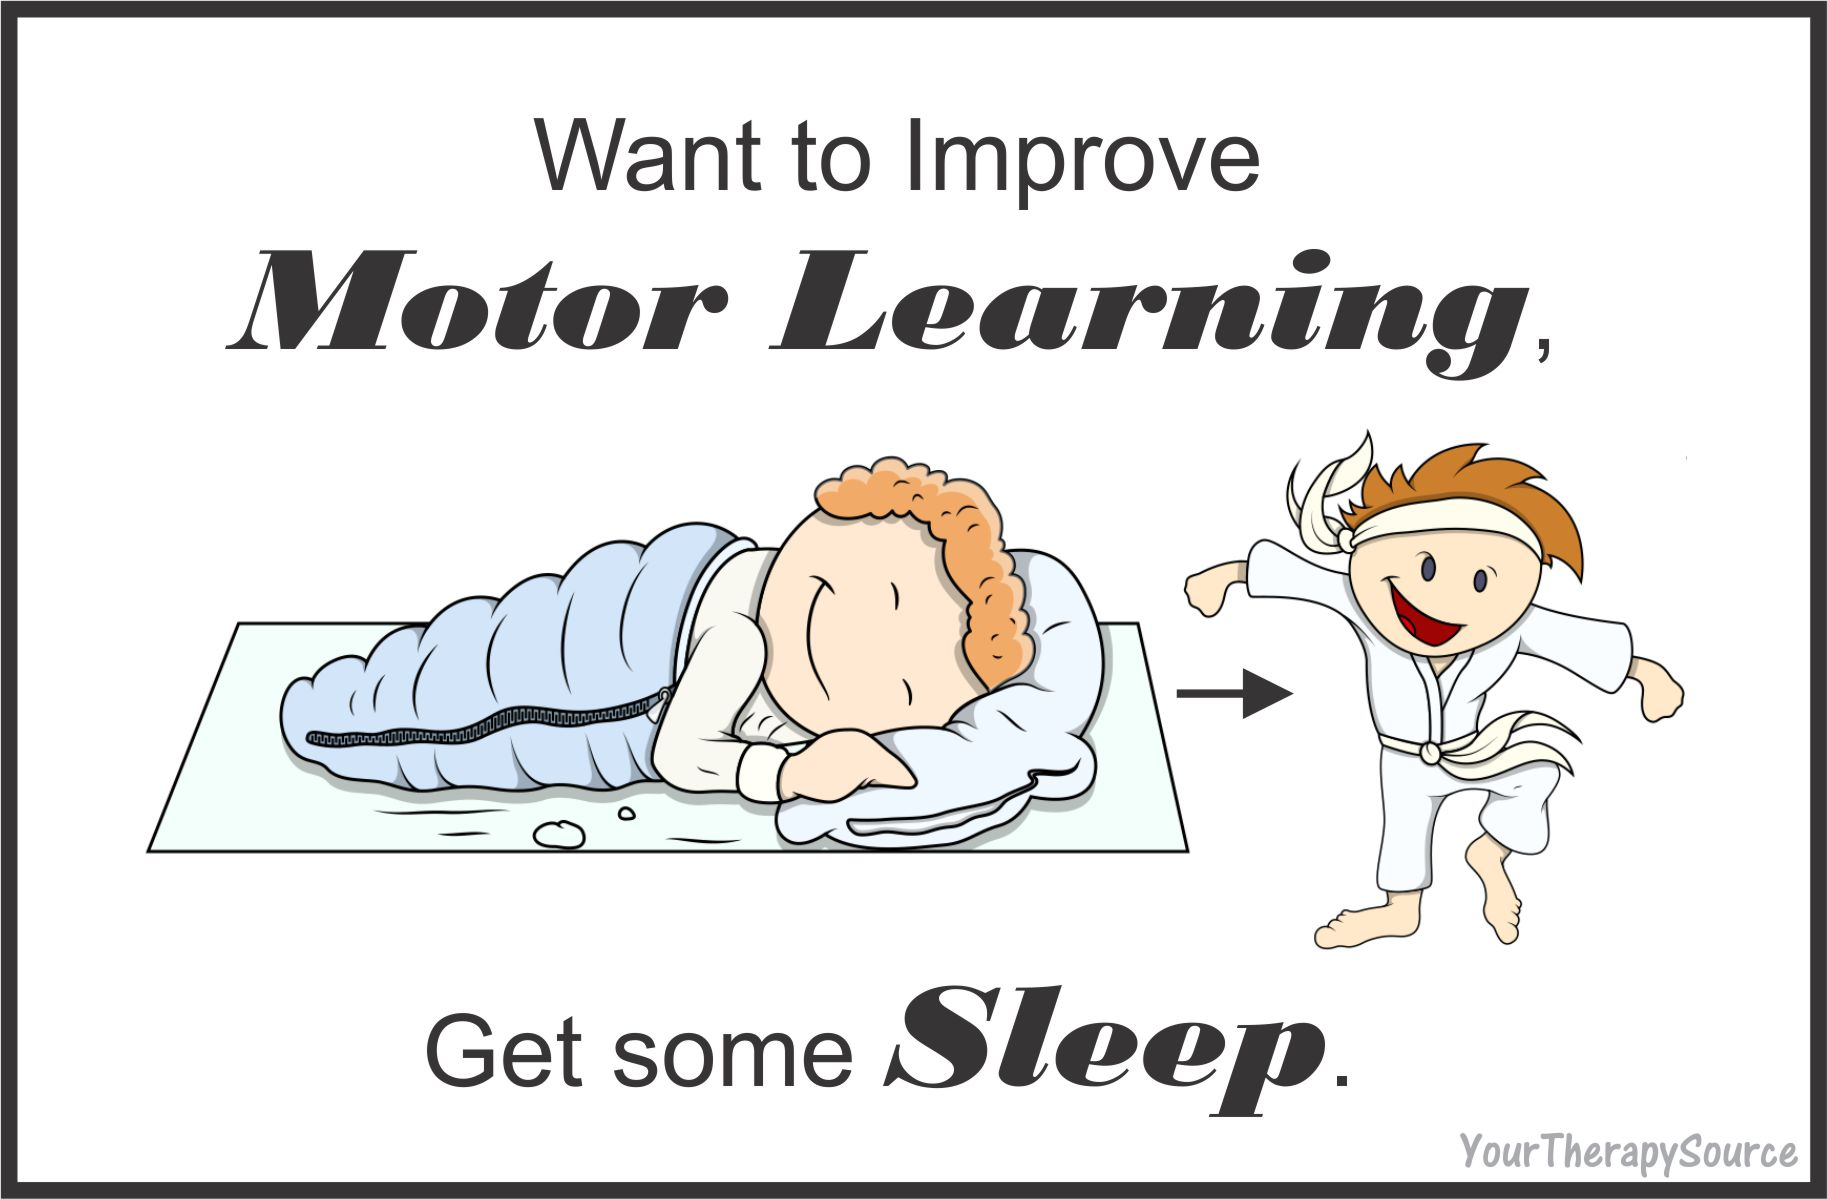 motor learning and sleep from www.YourTherapySource.com